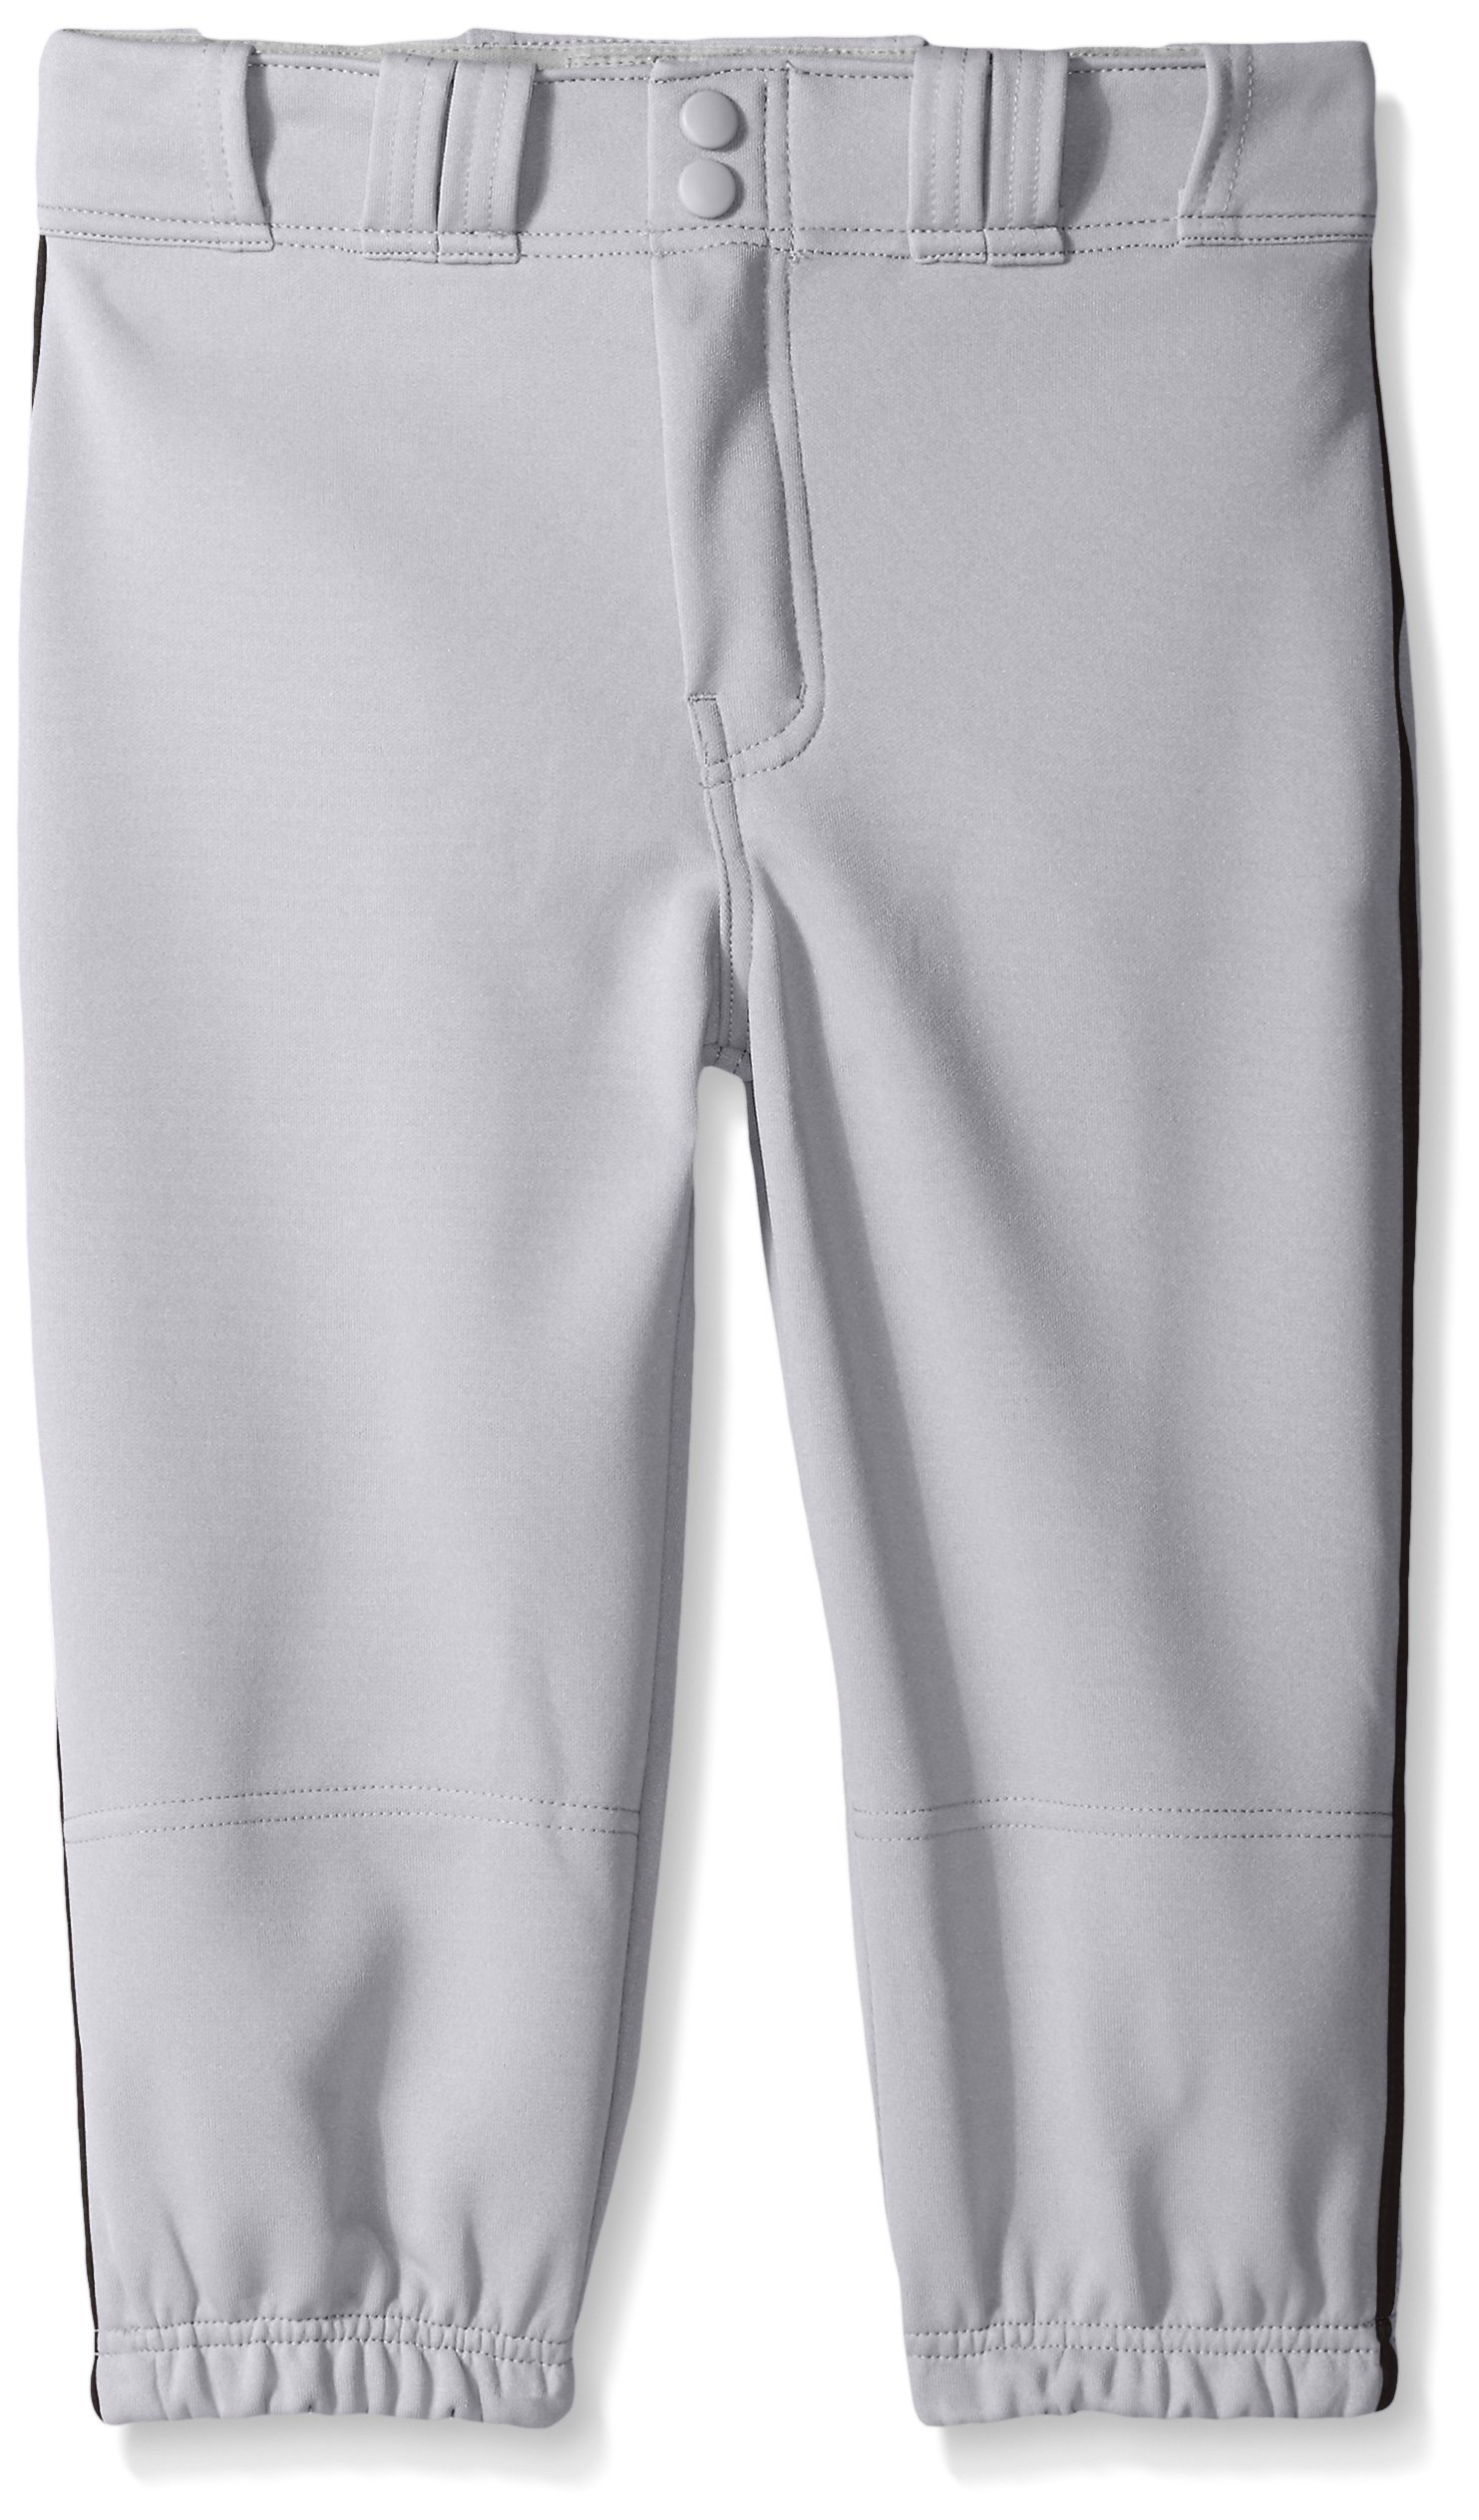 Easton Boys PRO Plus Piped Knicker, Grey/Black, Small